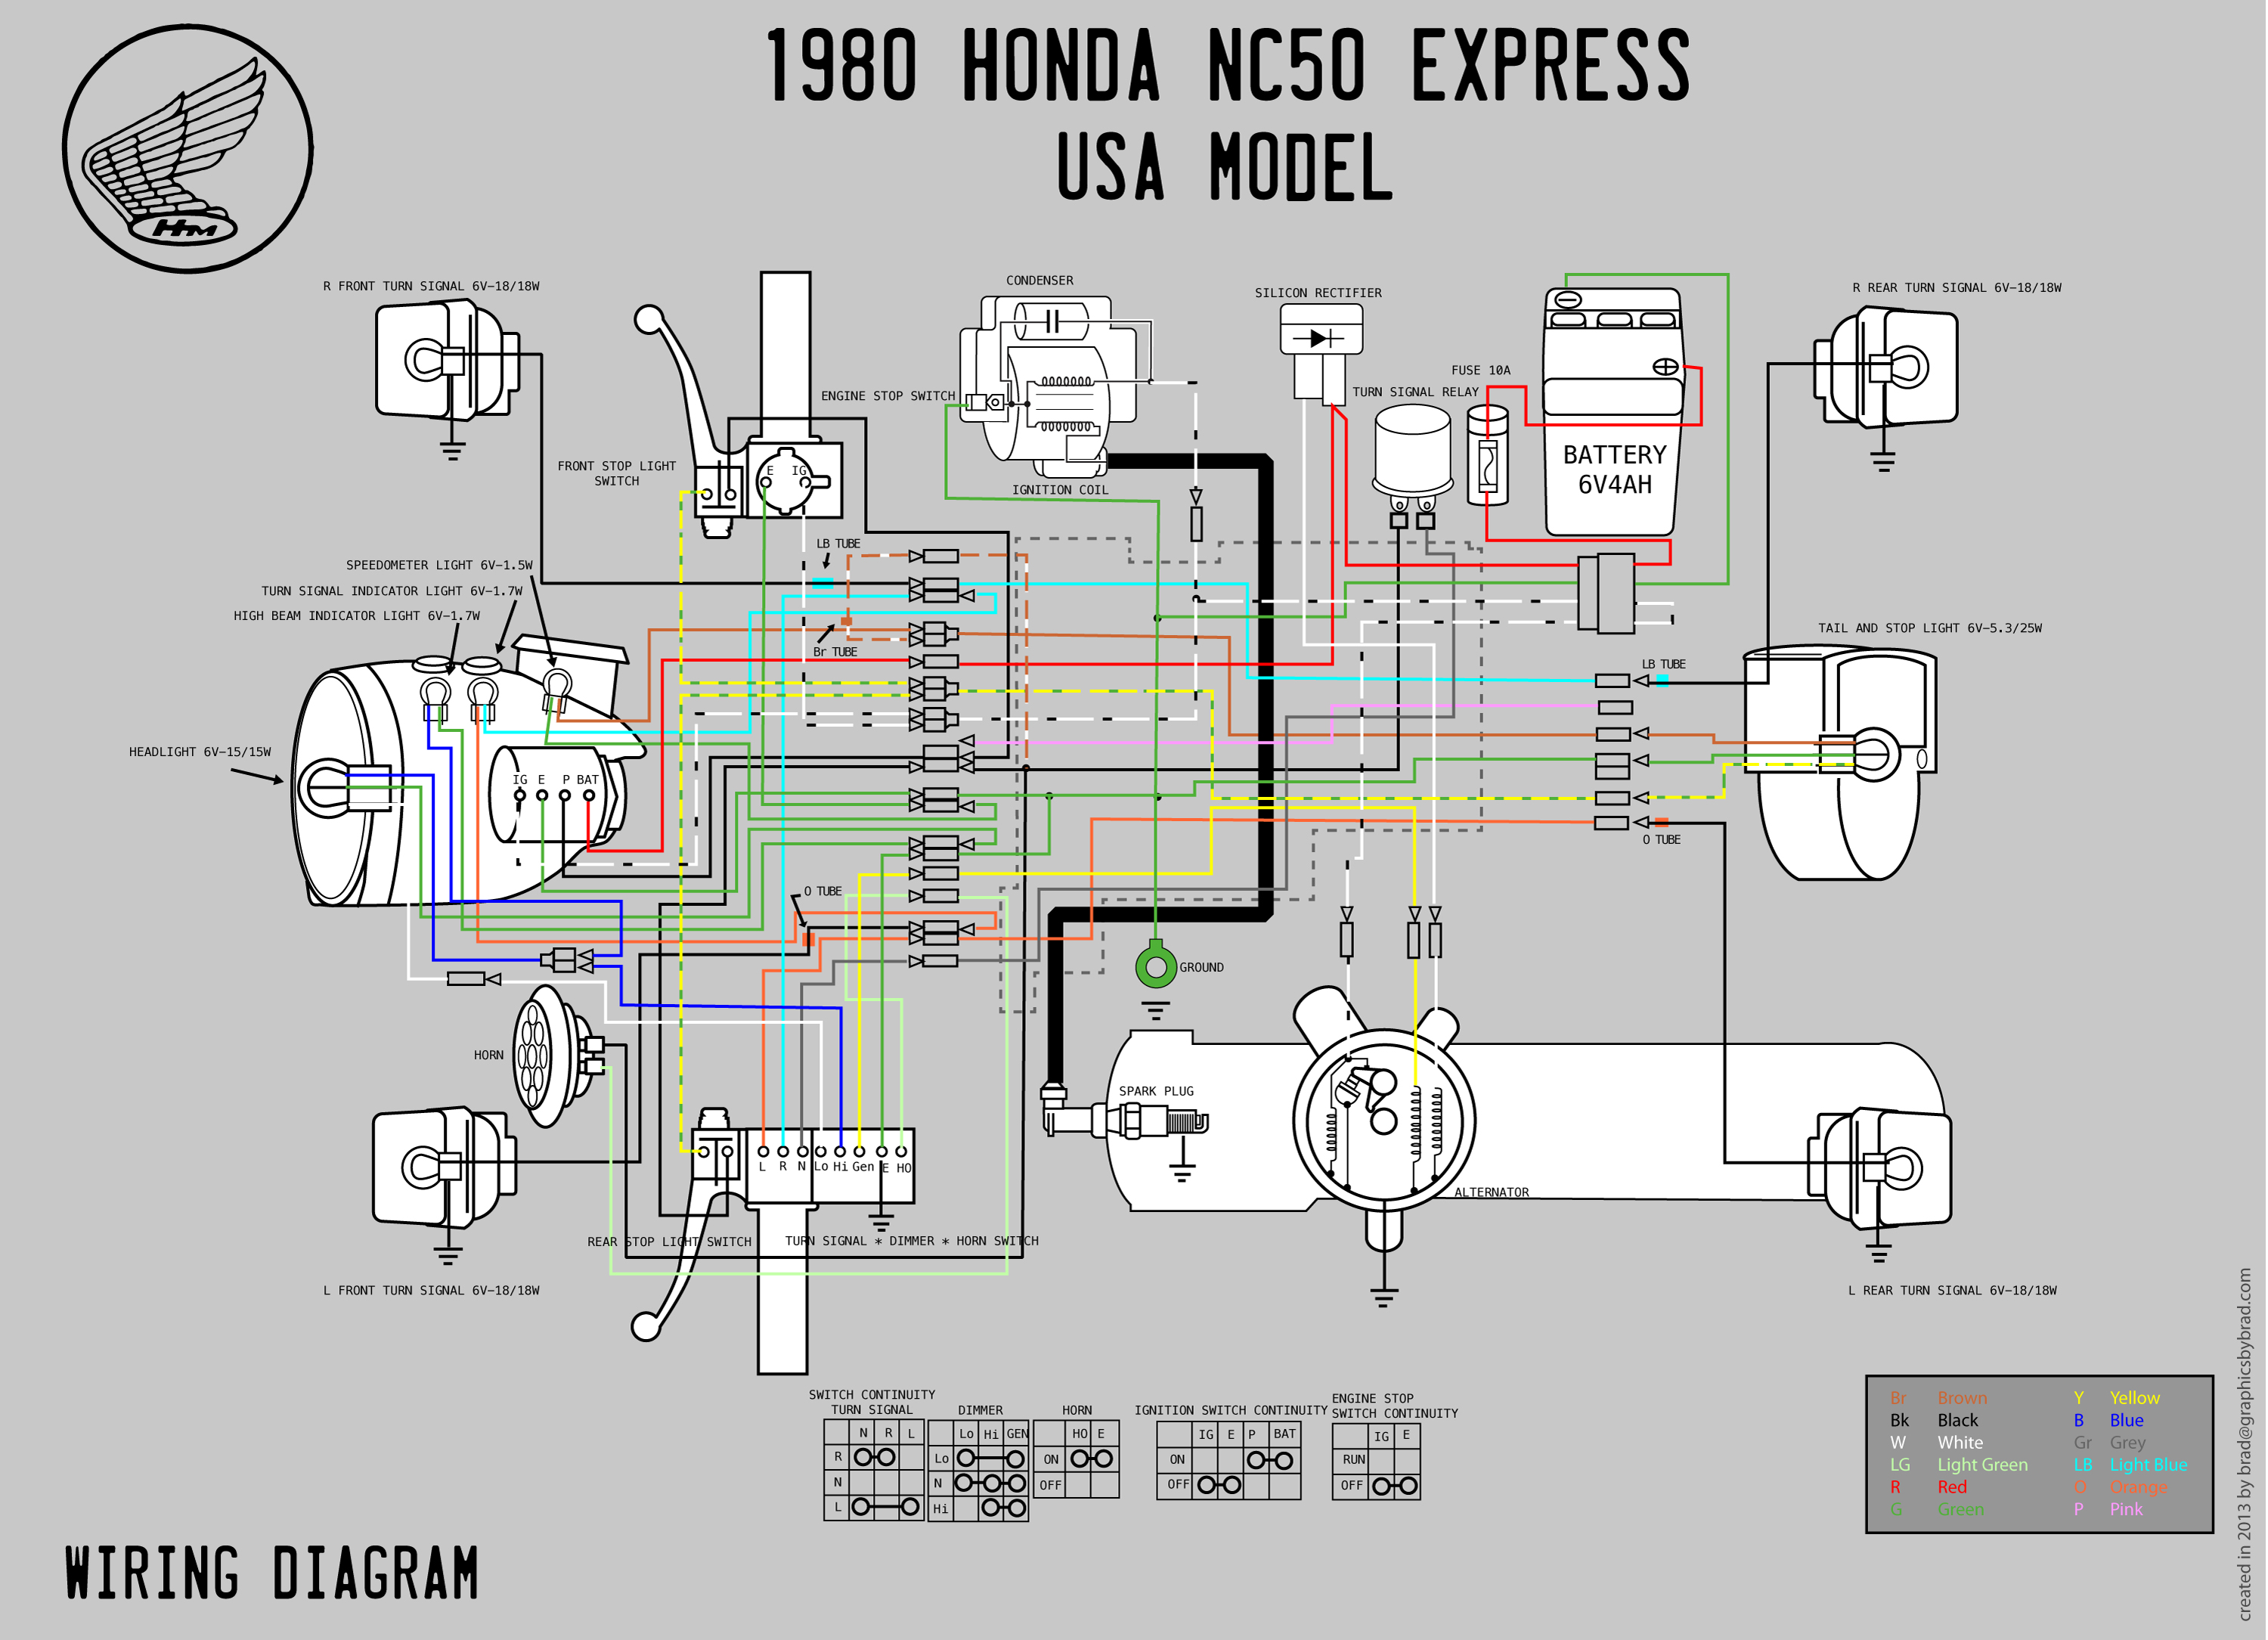 DIAGRAM] 1957 Honda Moped Wiring Diagram FULL Version HD Quality Wiring  Diagram - FIRSTSTEPDFW.JEPIX.FRfirststepdfw.jepix.fr